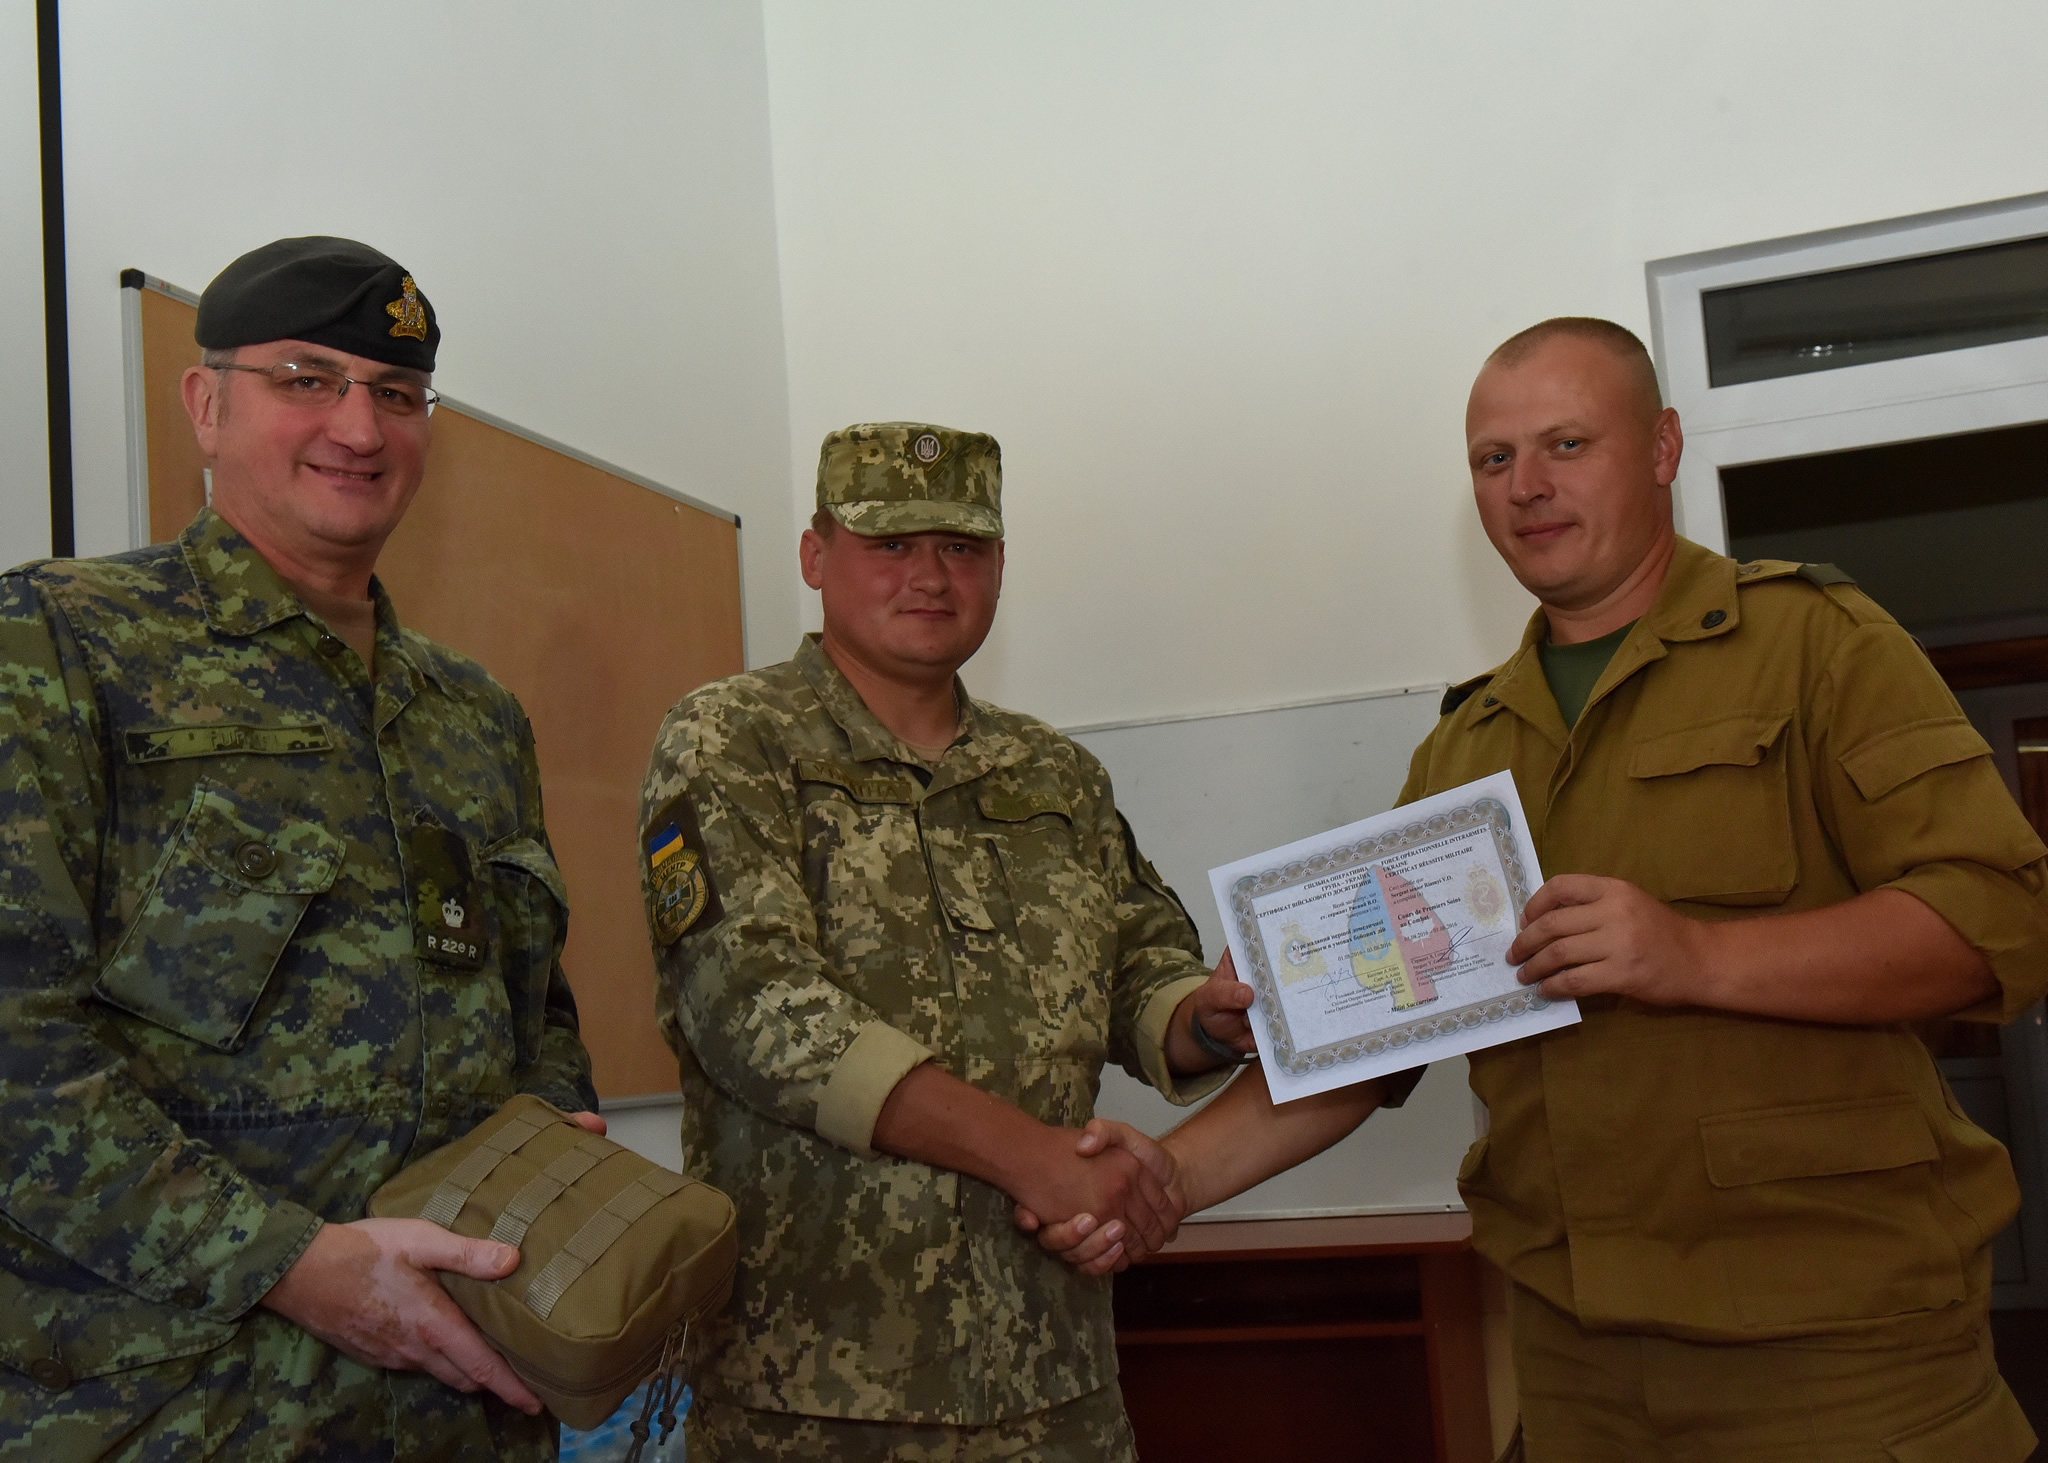 Maj Bruno Turmel, Deputy commander for Joint Task Force Ukraine, assists one of the four Ukrainian Instructors in presenting the course certificates for Combat First Aid to the students on 3 August 2016 during Operation UNIFIER. The four instructors are part of the first group instructor qualified Ukrainians who are teaching the Canadian course to soldiers during the 55 day training block under the supervision of members of Joint Task Force Ukraine. (Photo : Capt J.P. Coulombe, JTF-U PAO)